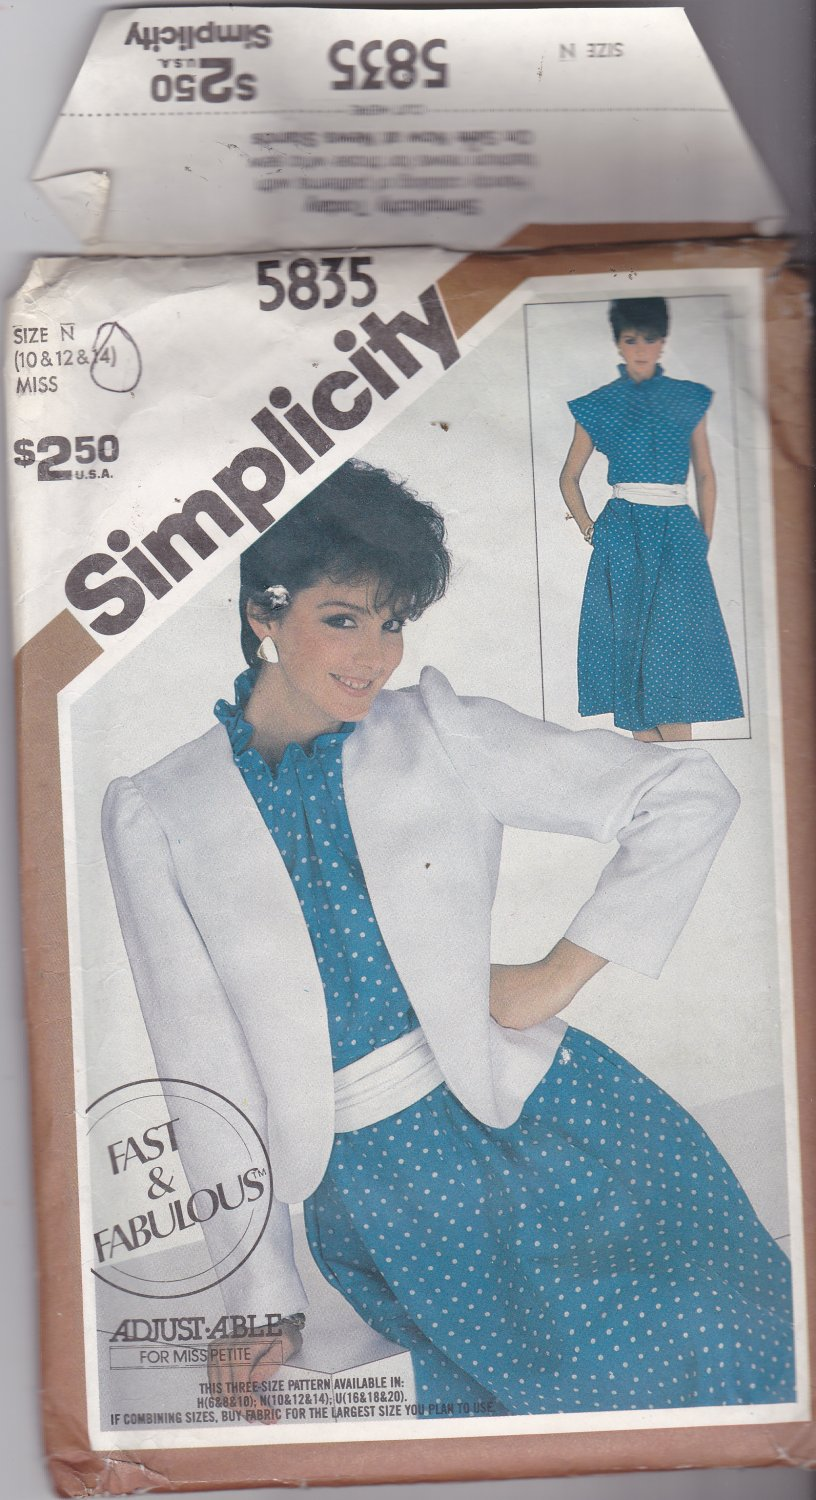 Simplicity 5835 size 14, may be missing pieces